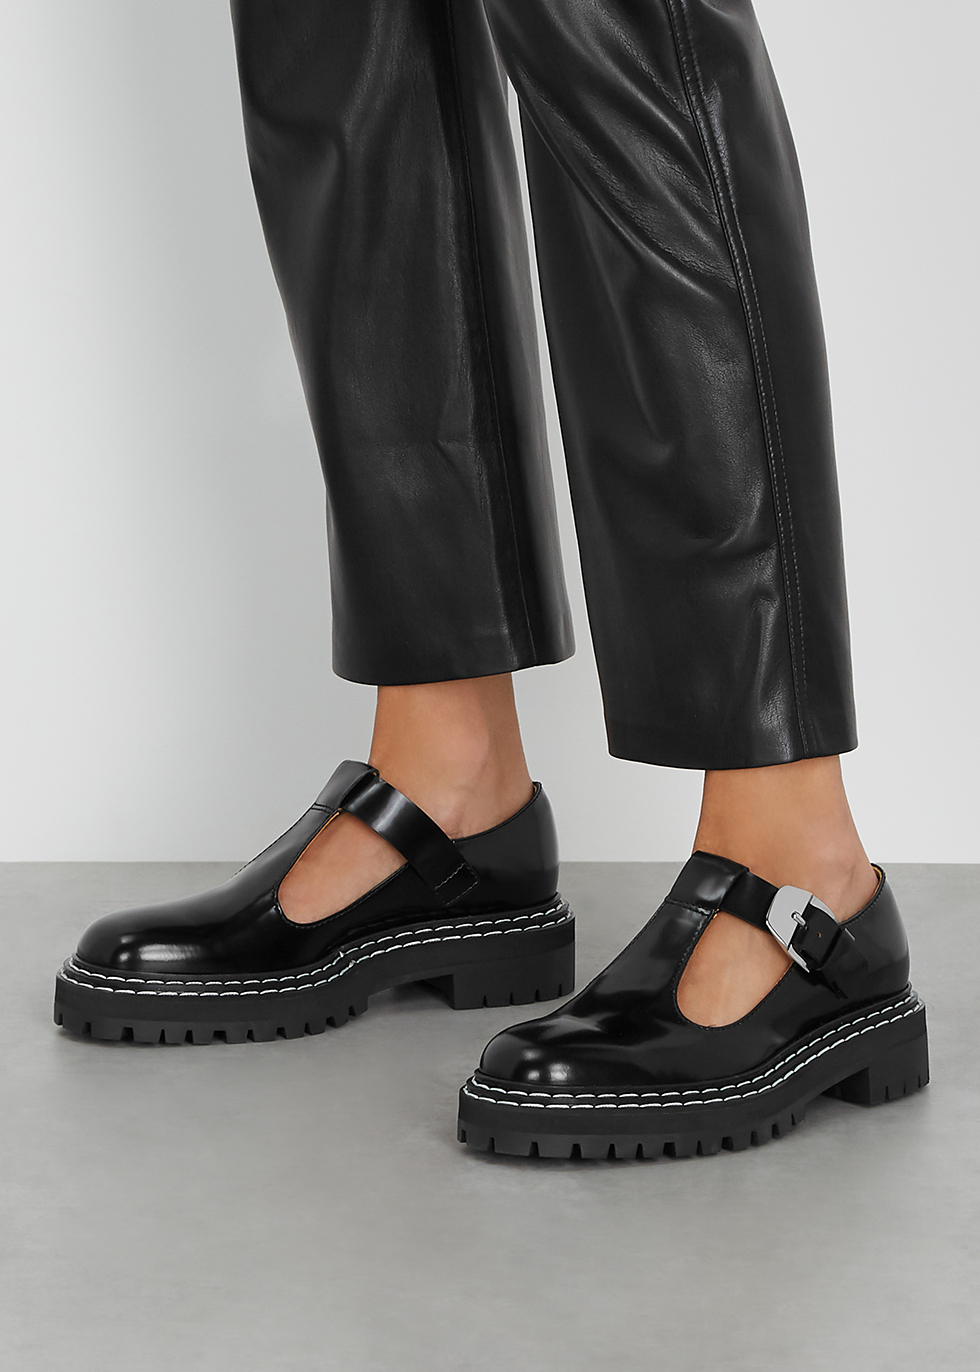 Proenza Schouler Black leather Mary